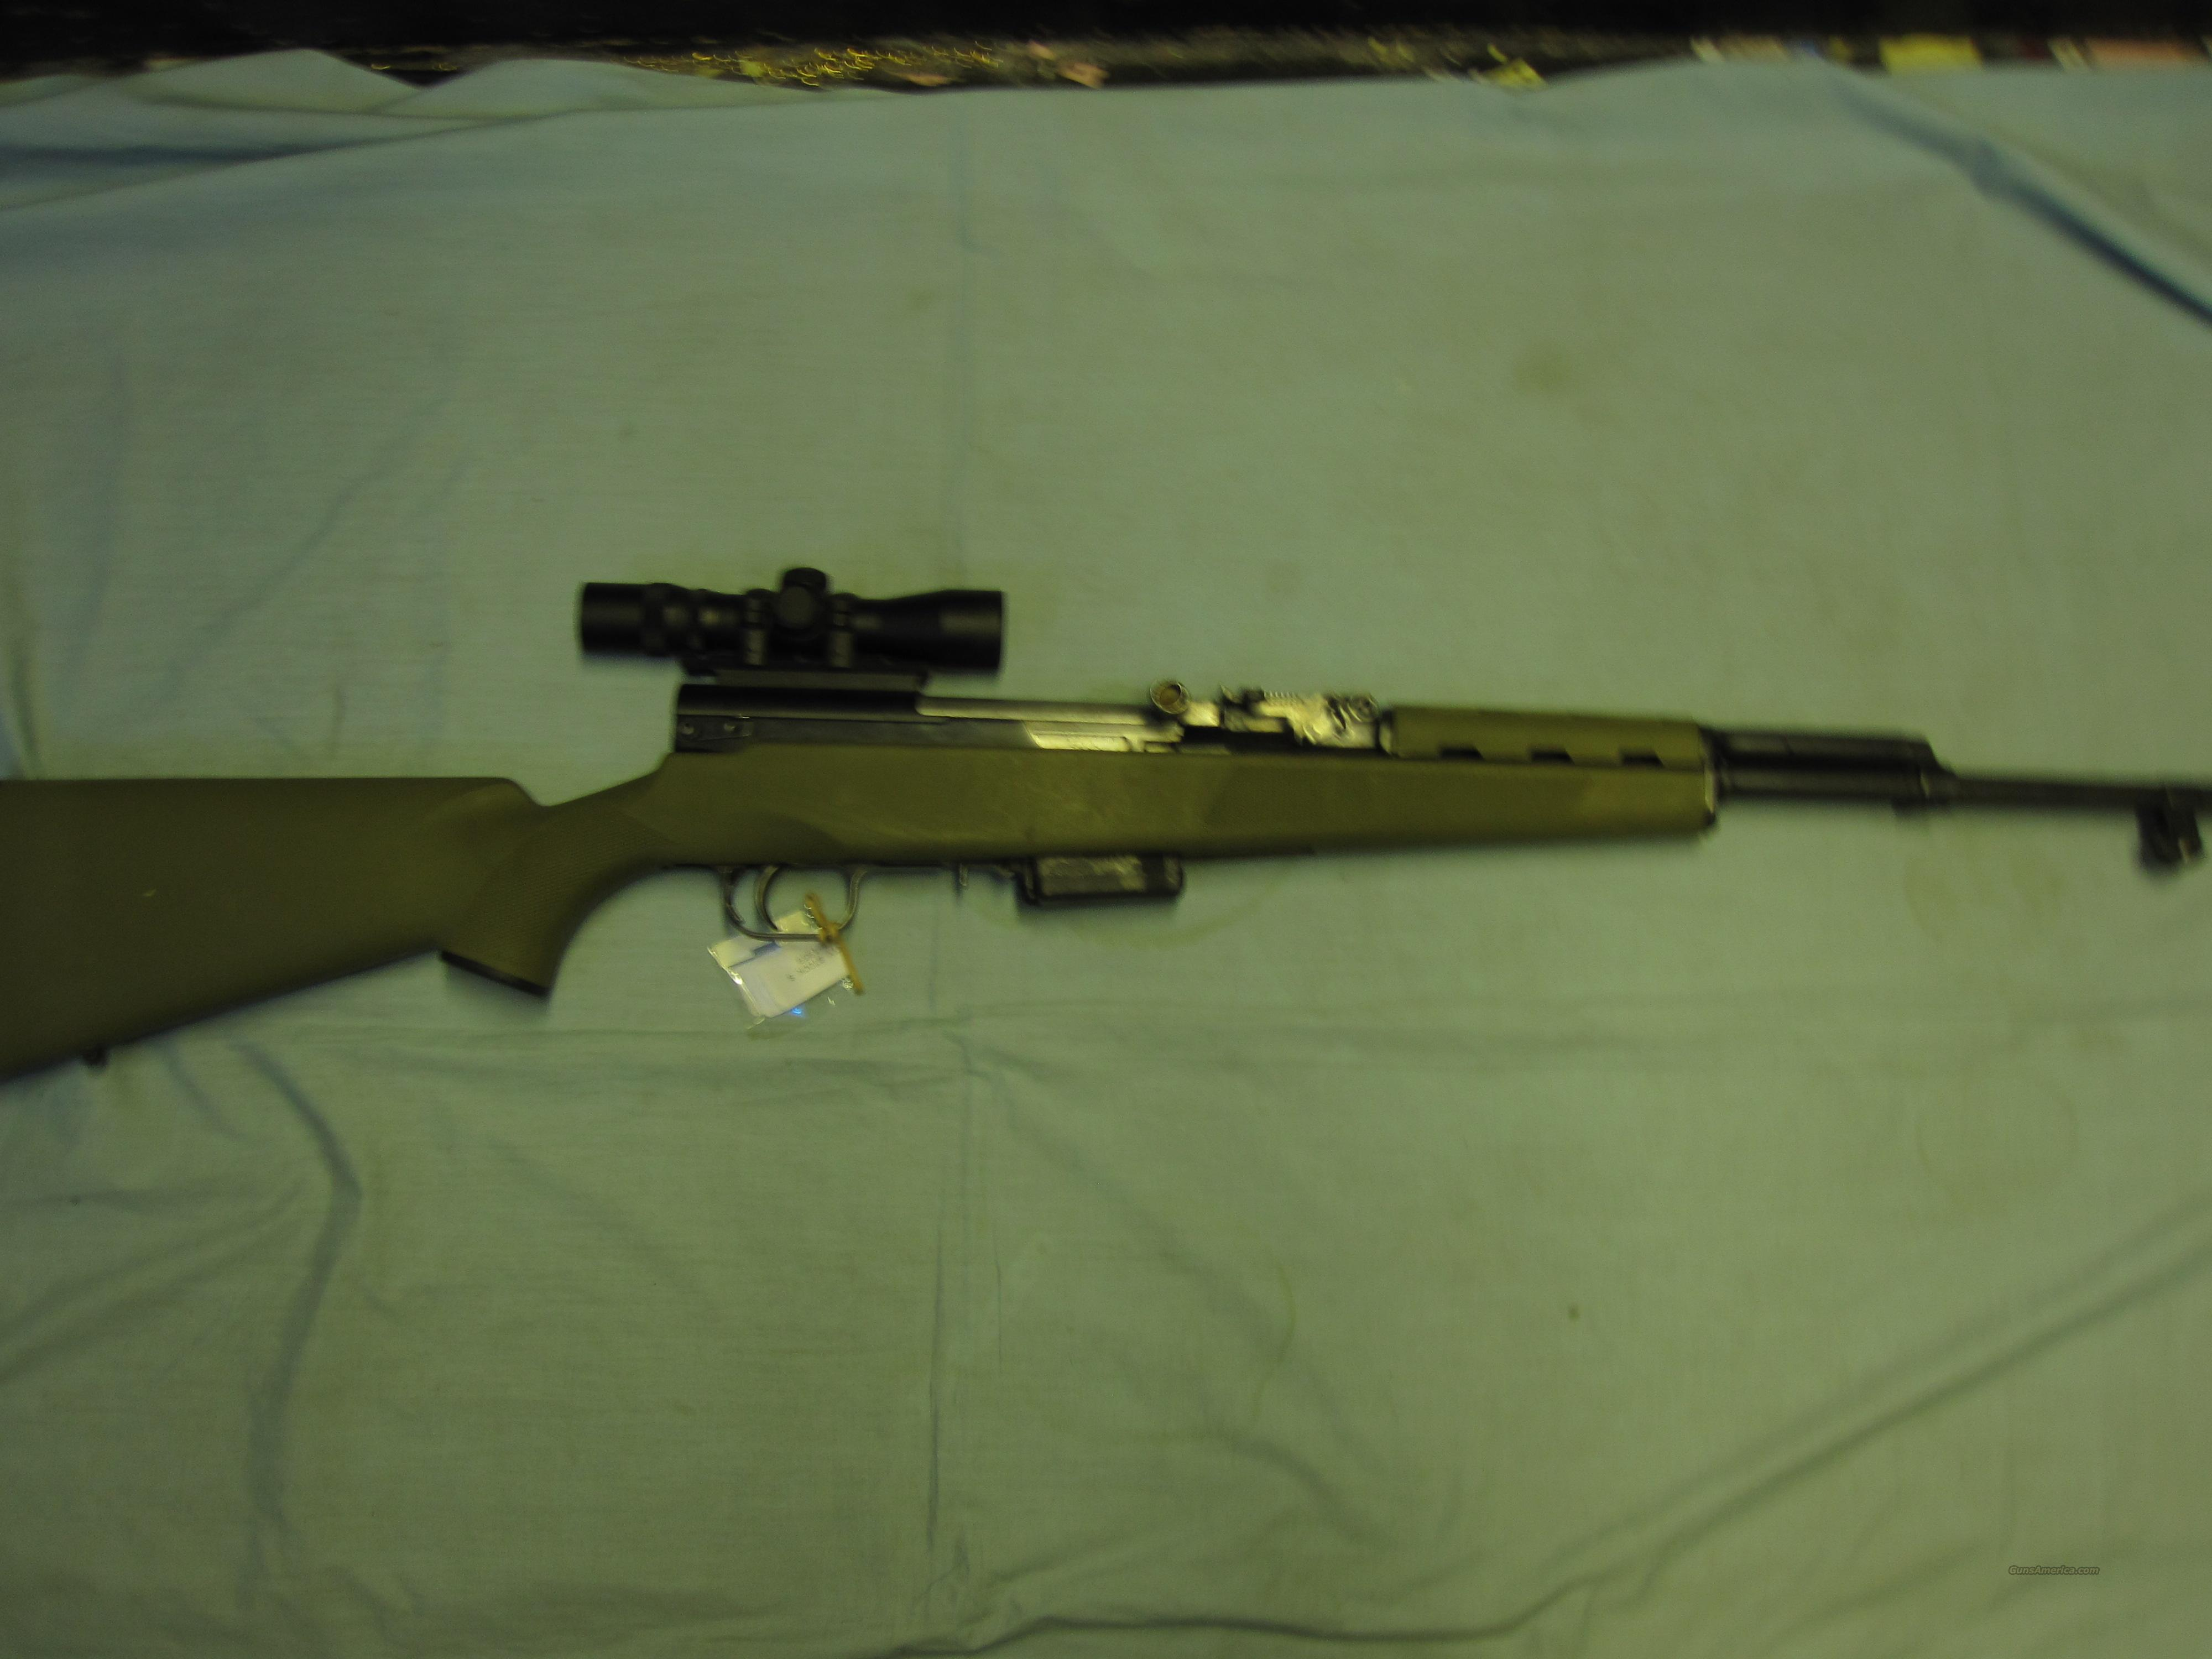 SKS romanian w/synth stock & 4x28 power scope  Guns > Rifles > SKS Rifles